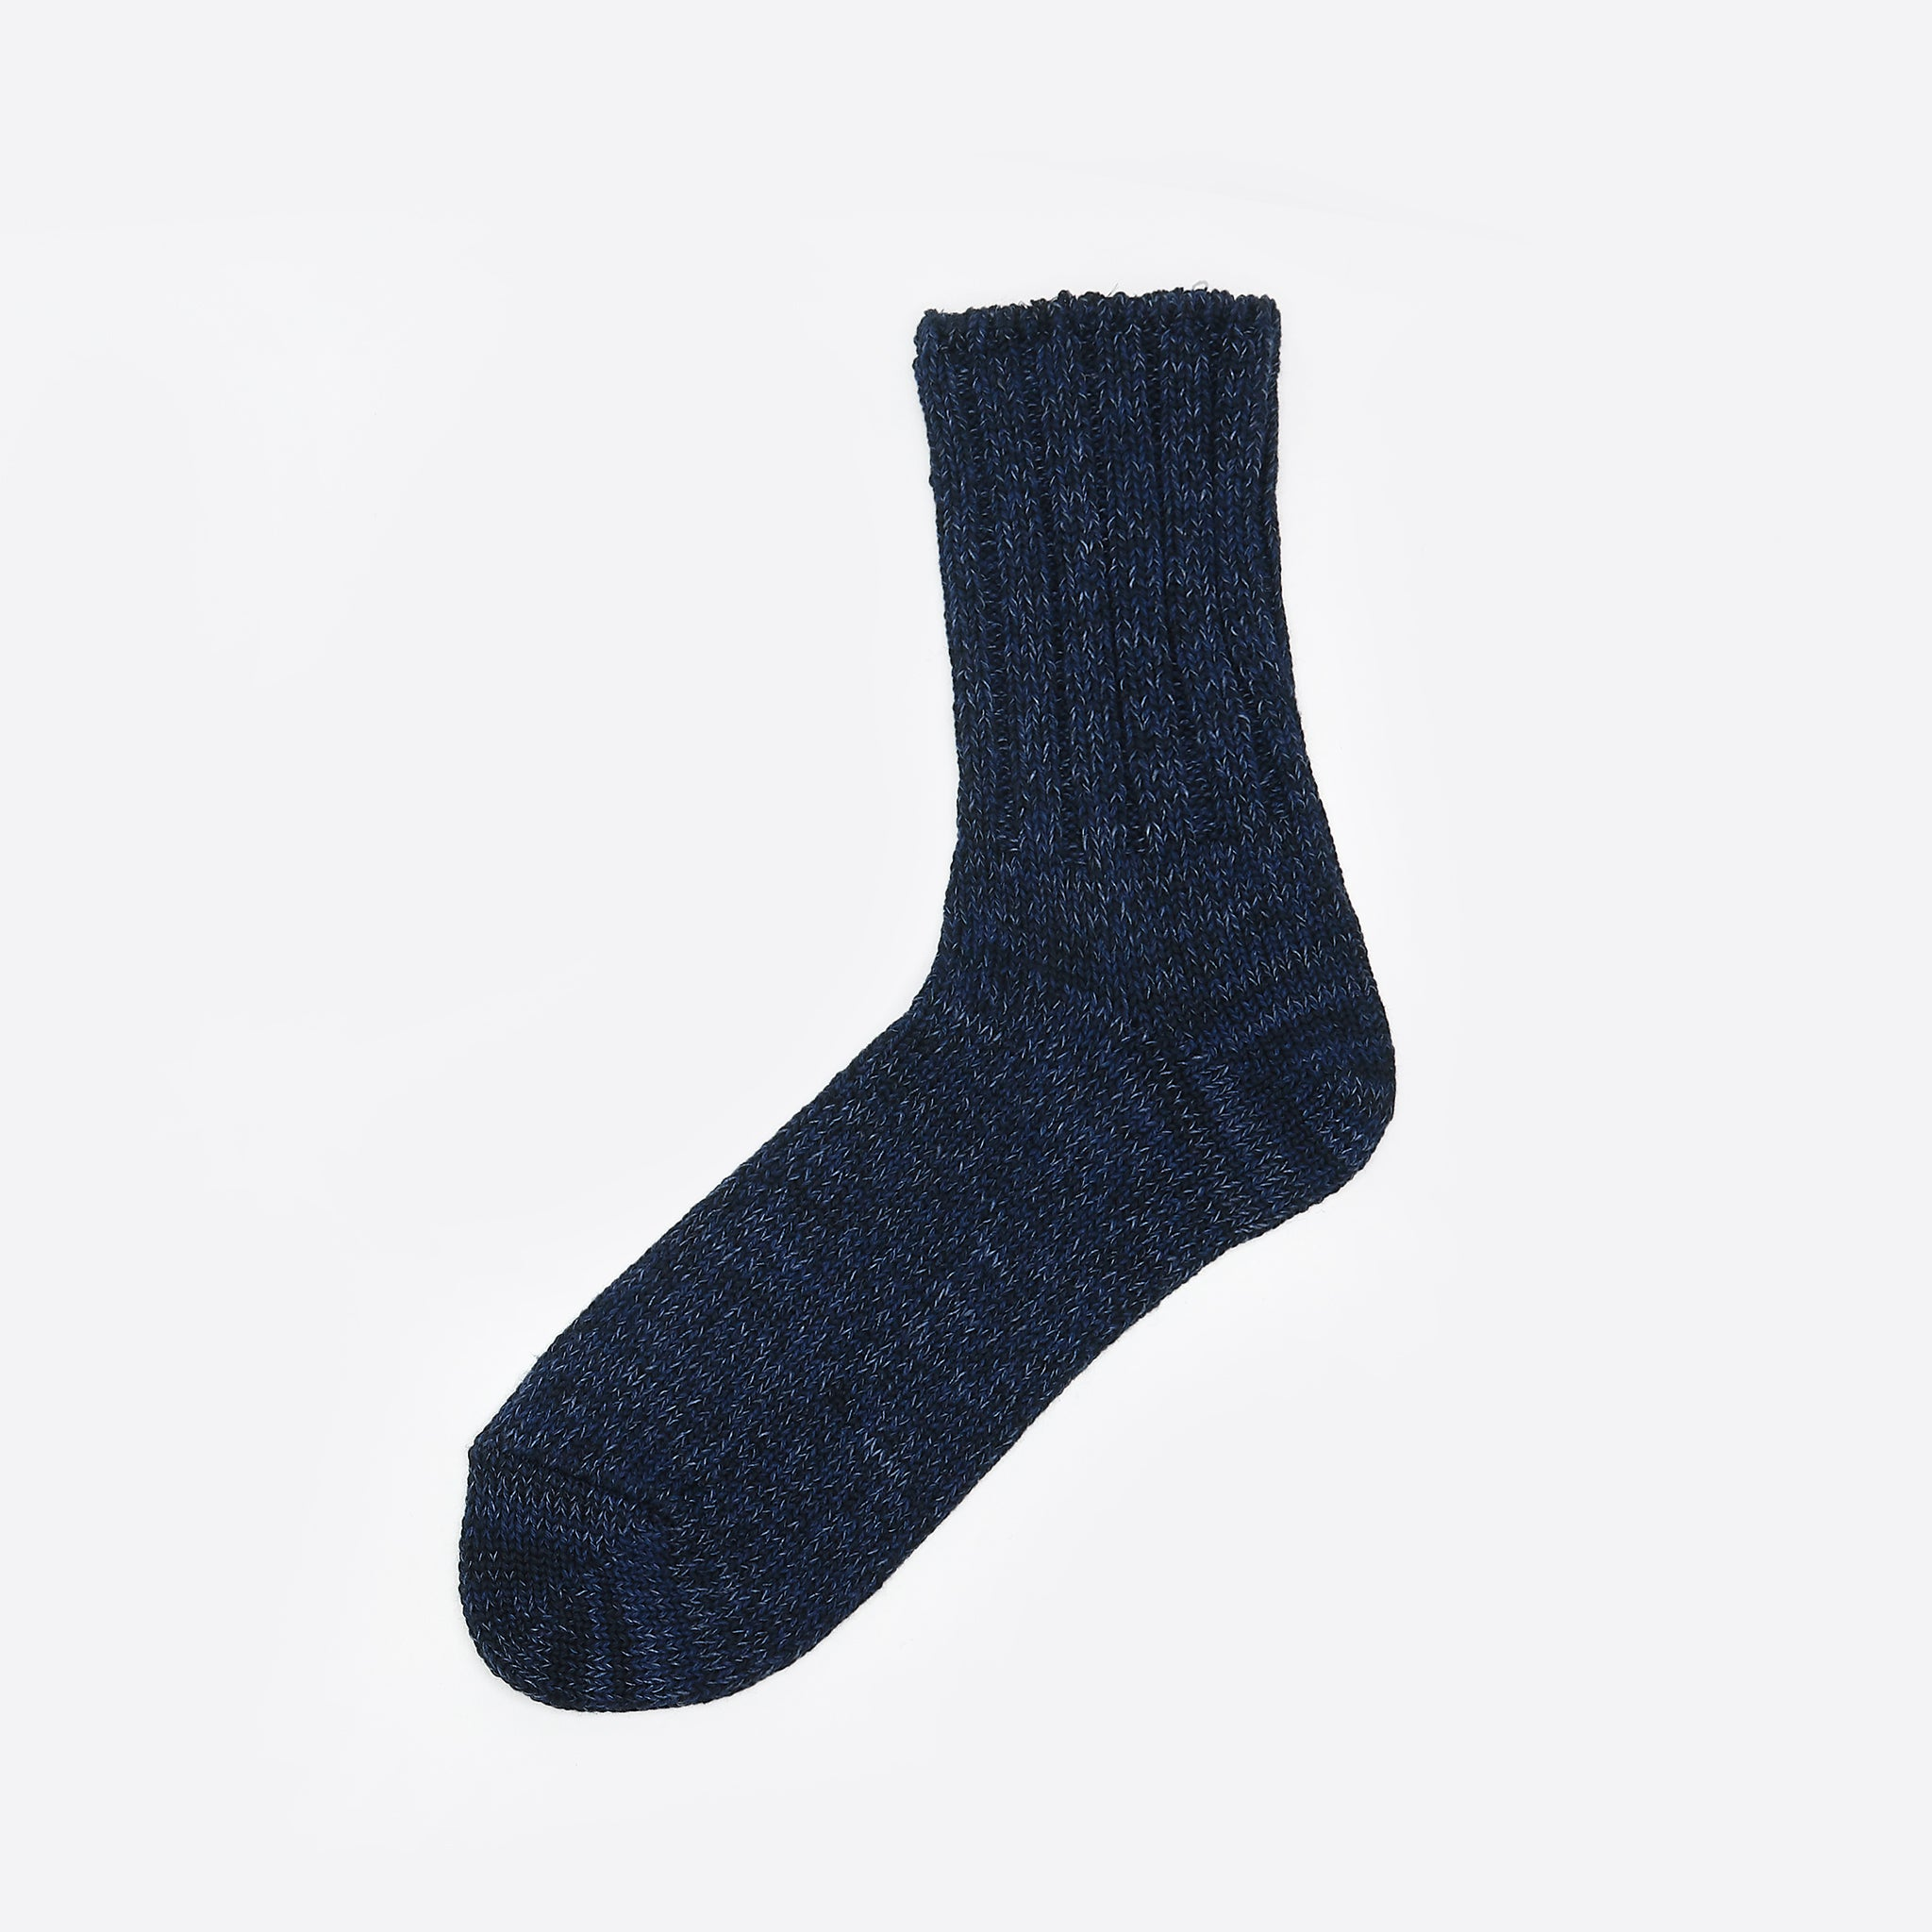 Rototo Denim Tone Socks in Dark Denim